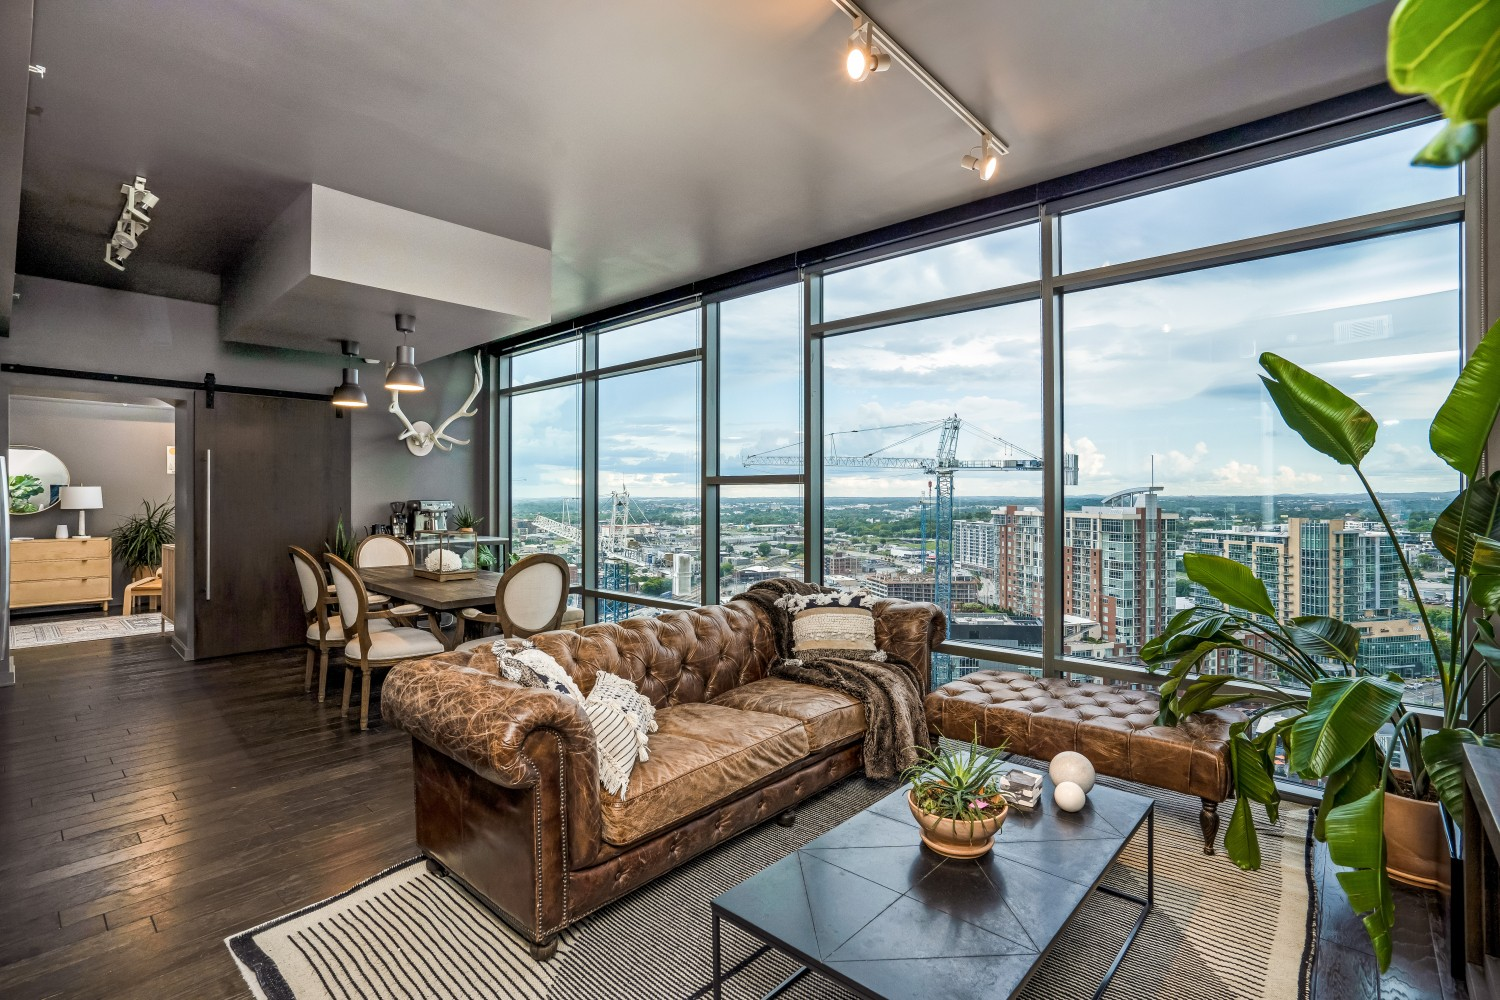 Luxurious high-rise living. 2BD|2BA. Panoramic GULCH views. Floor to ceiling glass. 12|12 features 2 guest suites, salt-water pool, hot tub, green roof, trainer driven fitness center, indoor dog run and 2 owner lounges.